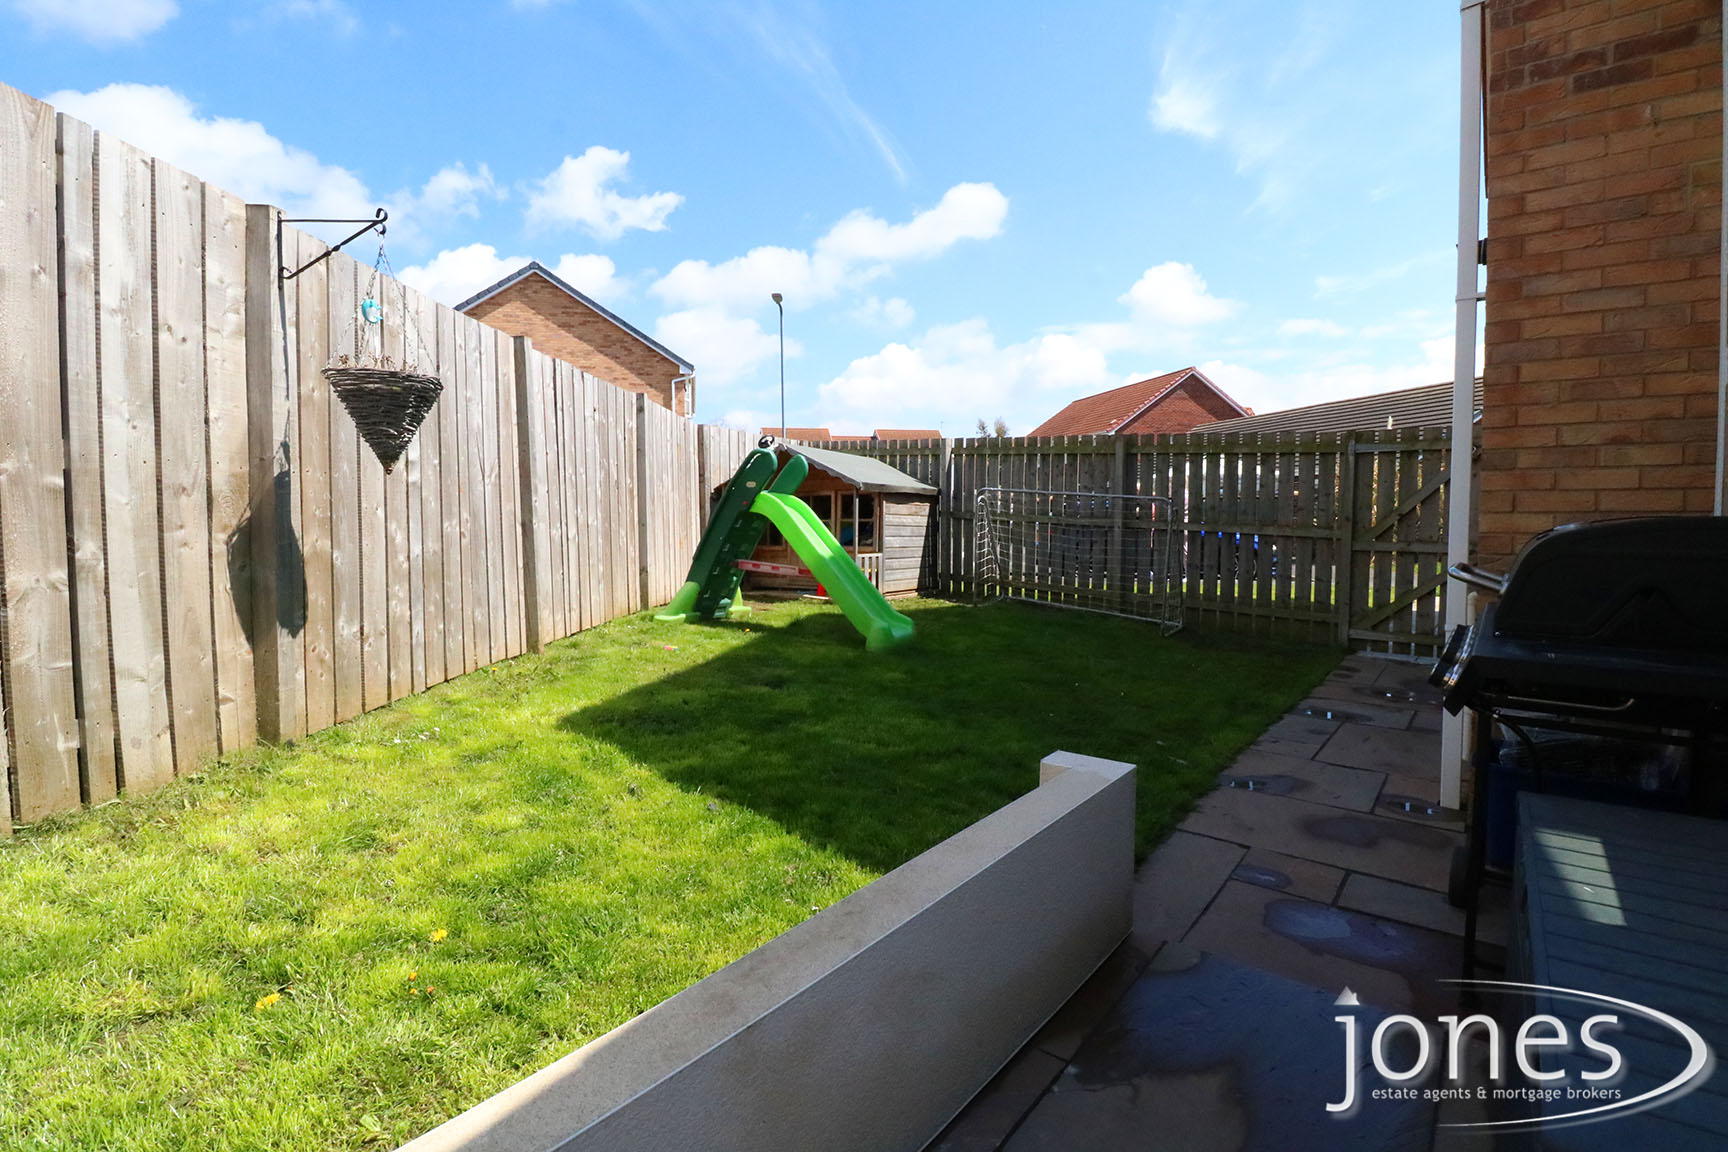 Home for Sale Let - Photo 11 Aristotle Drive, Stockton on Tees,  TS19 8GH